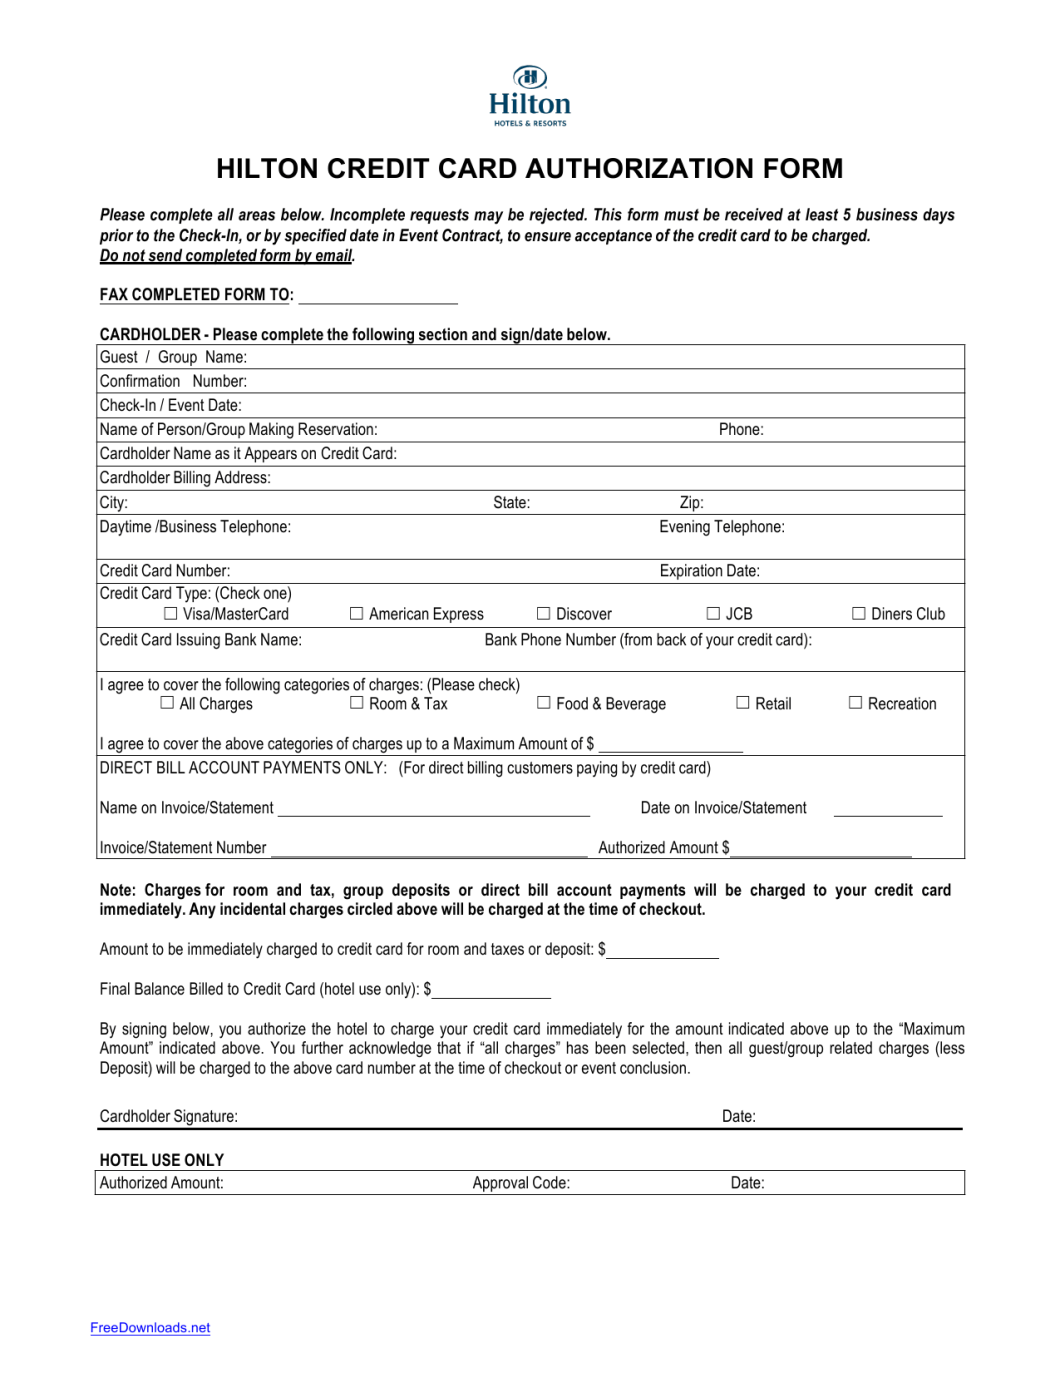 hilton credit card authorization form inviletter co